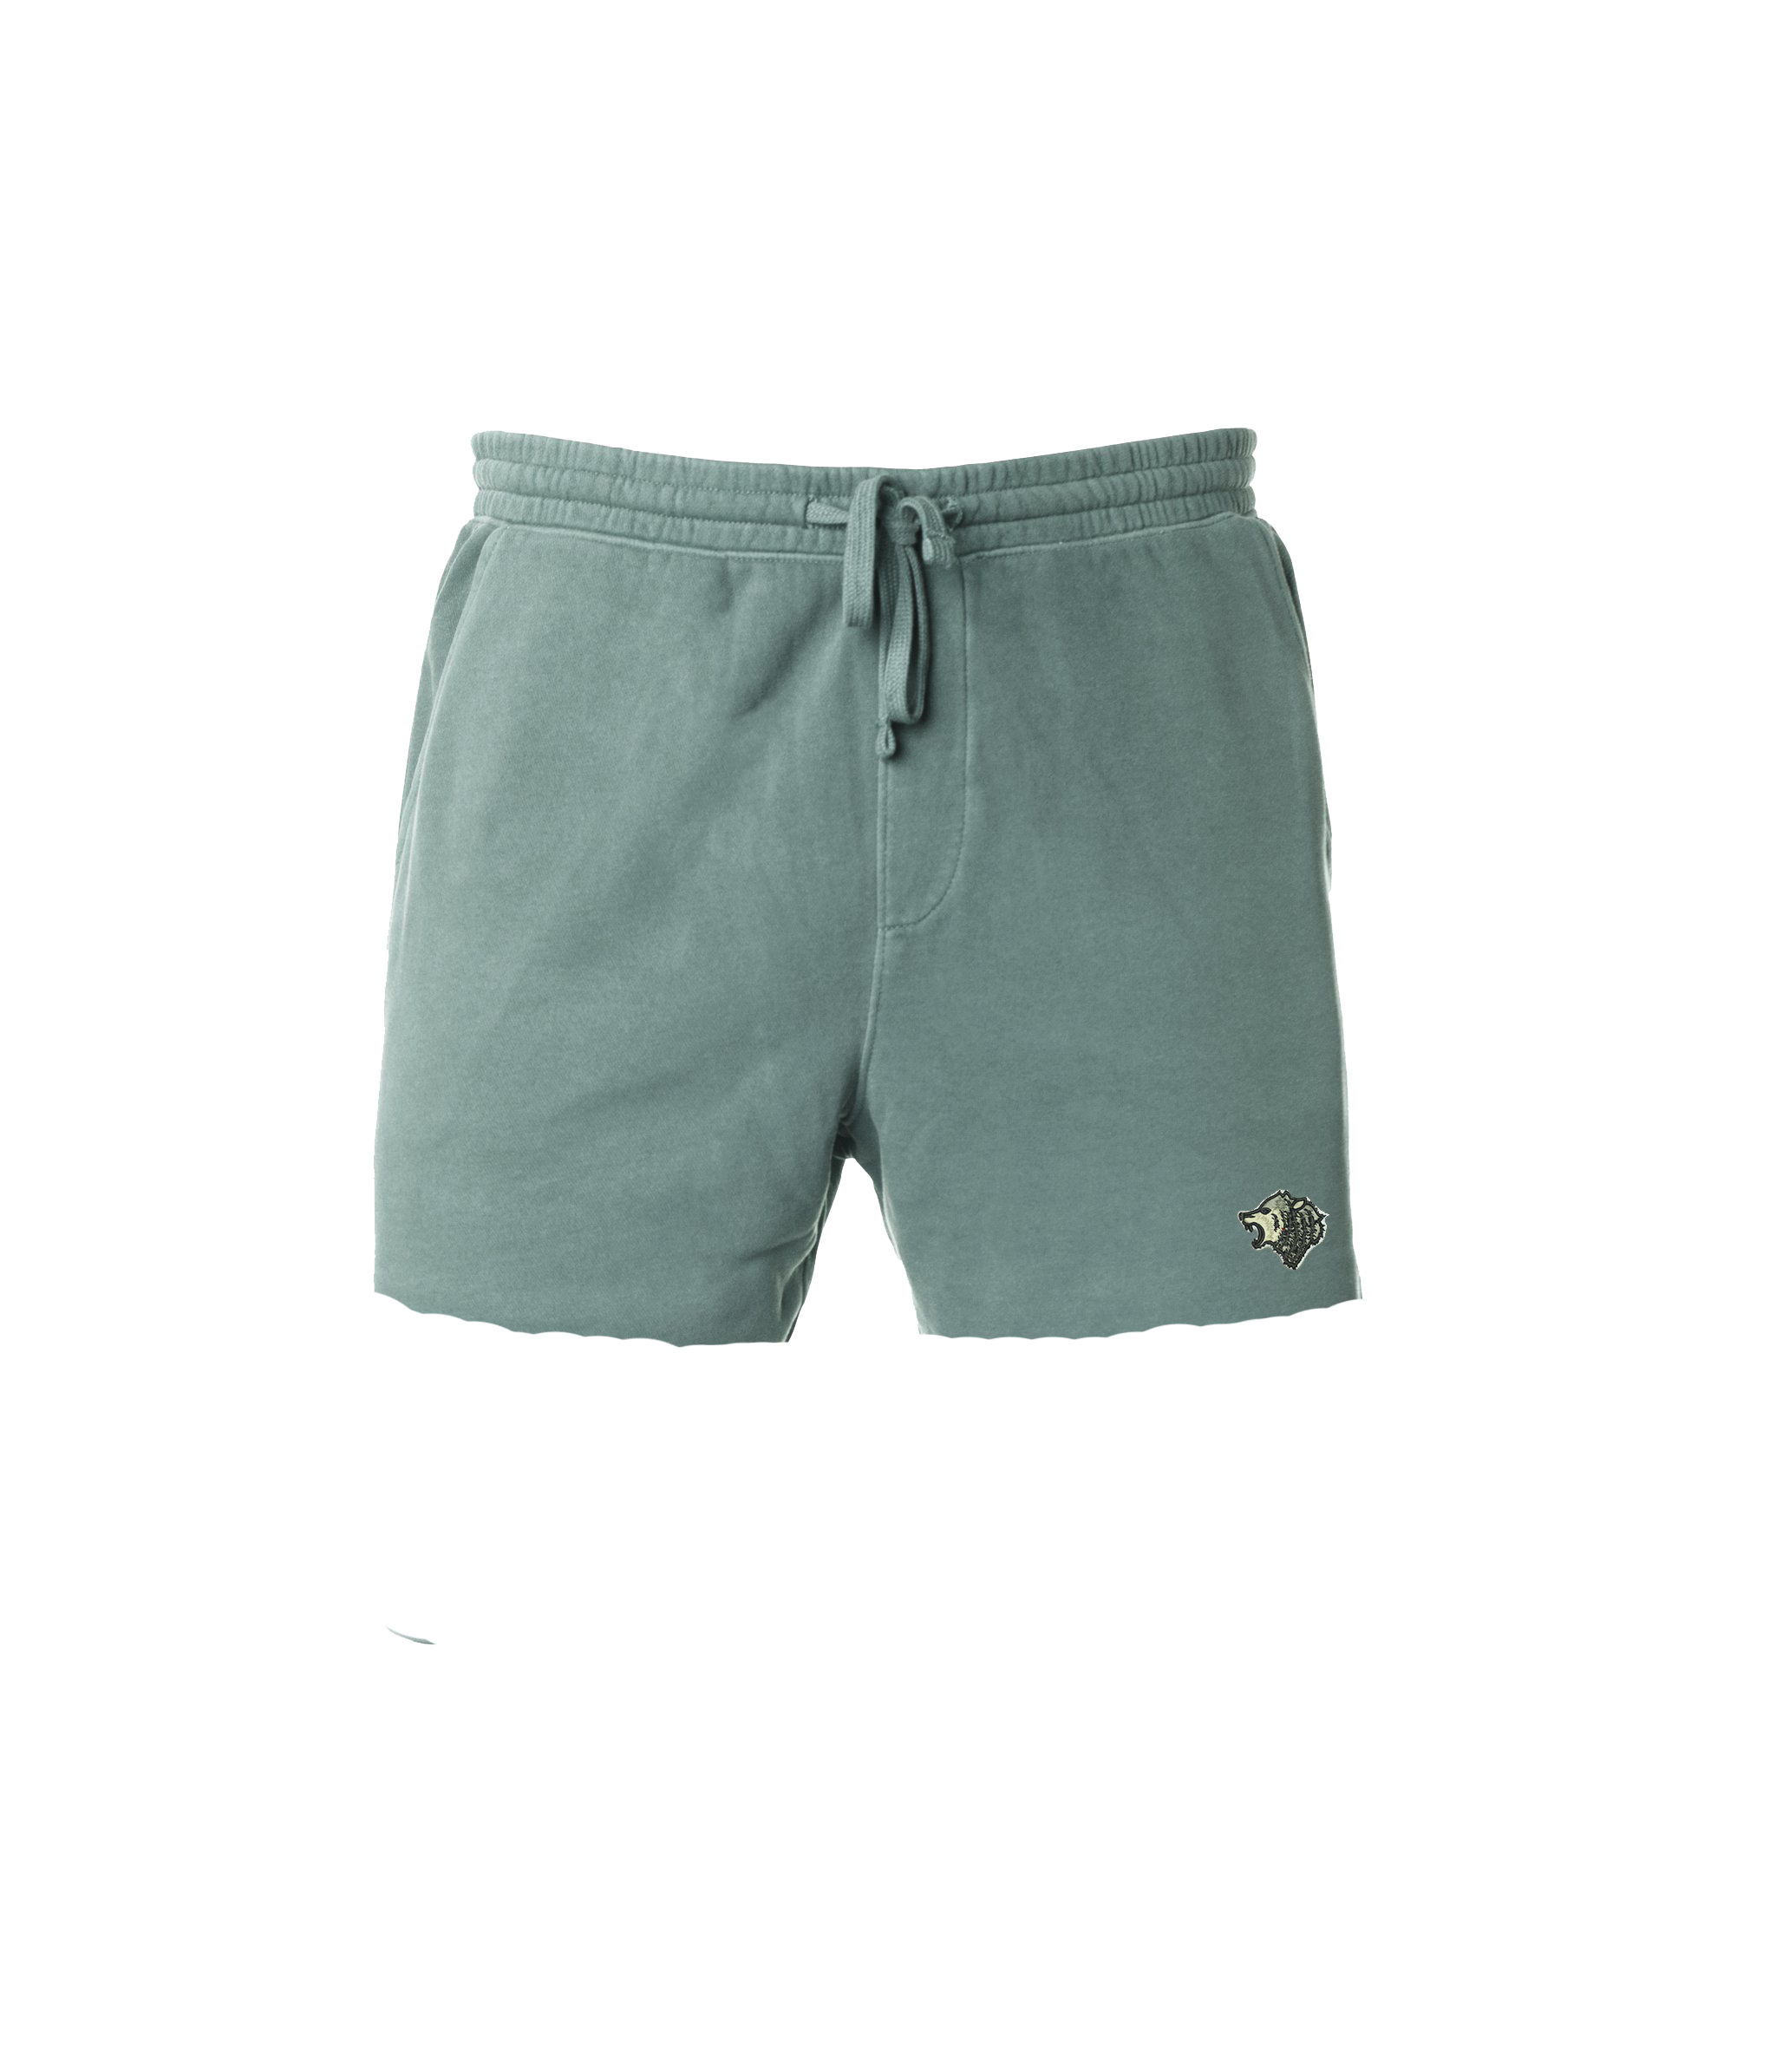 The Pigment Dyed Raw Edge Short - Up to Size XXL(40-42)